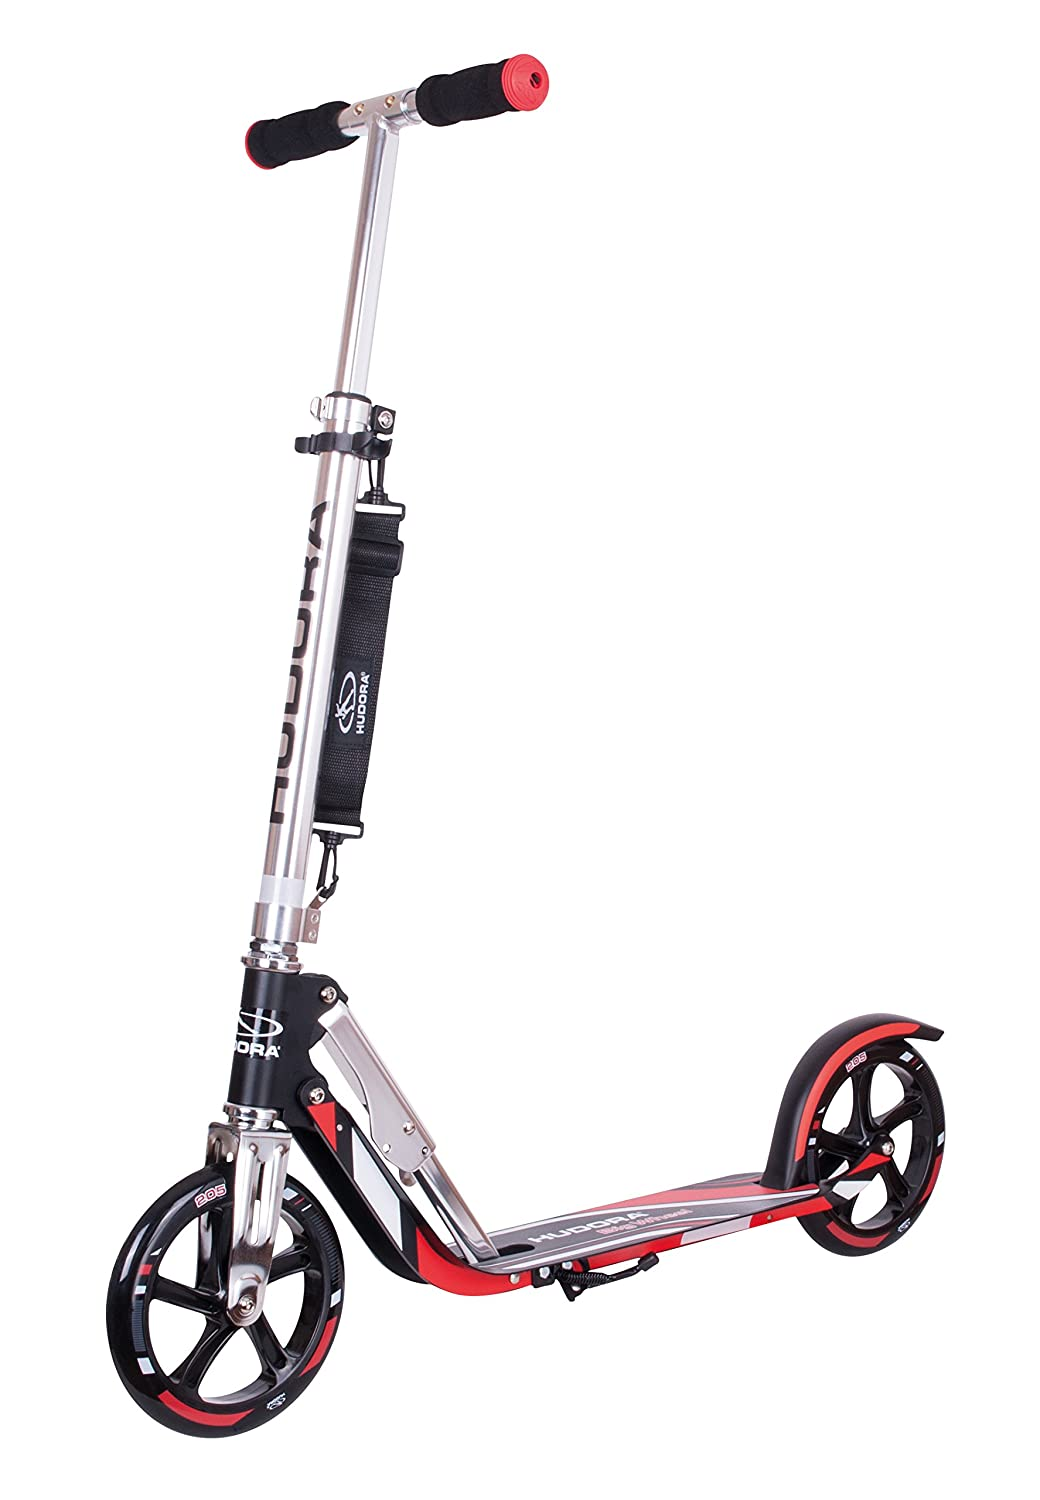 Hudora Big Wheel 205 - scooters (Kids/Adults, Asphalt, Azul, Verde) 14750/01